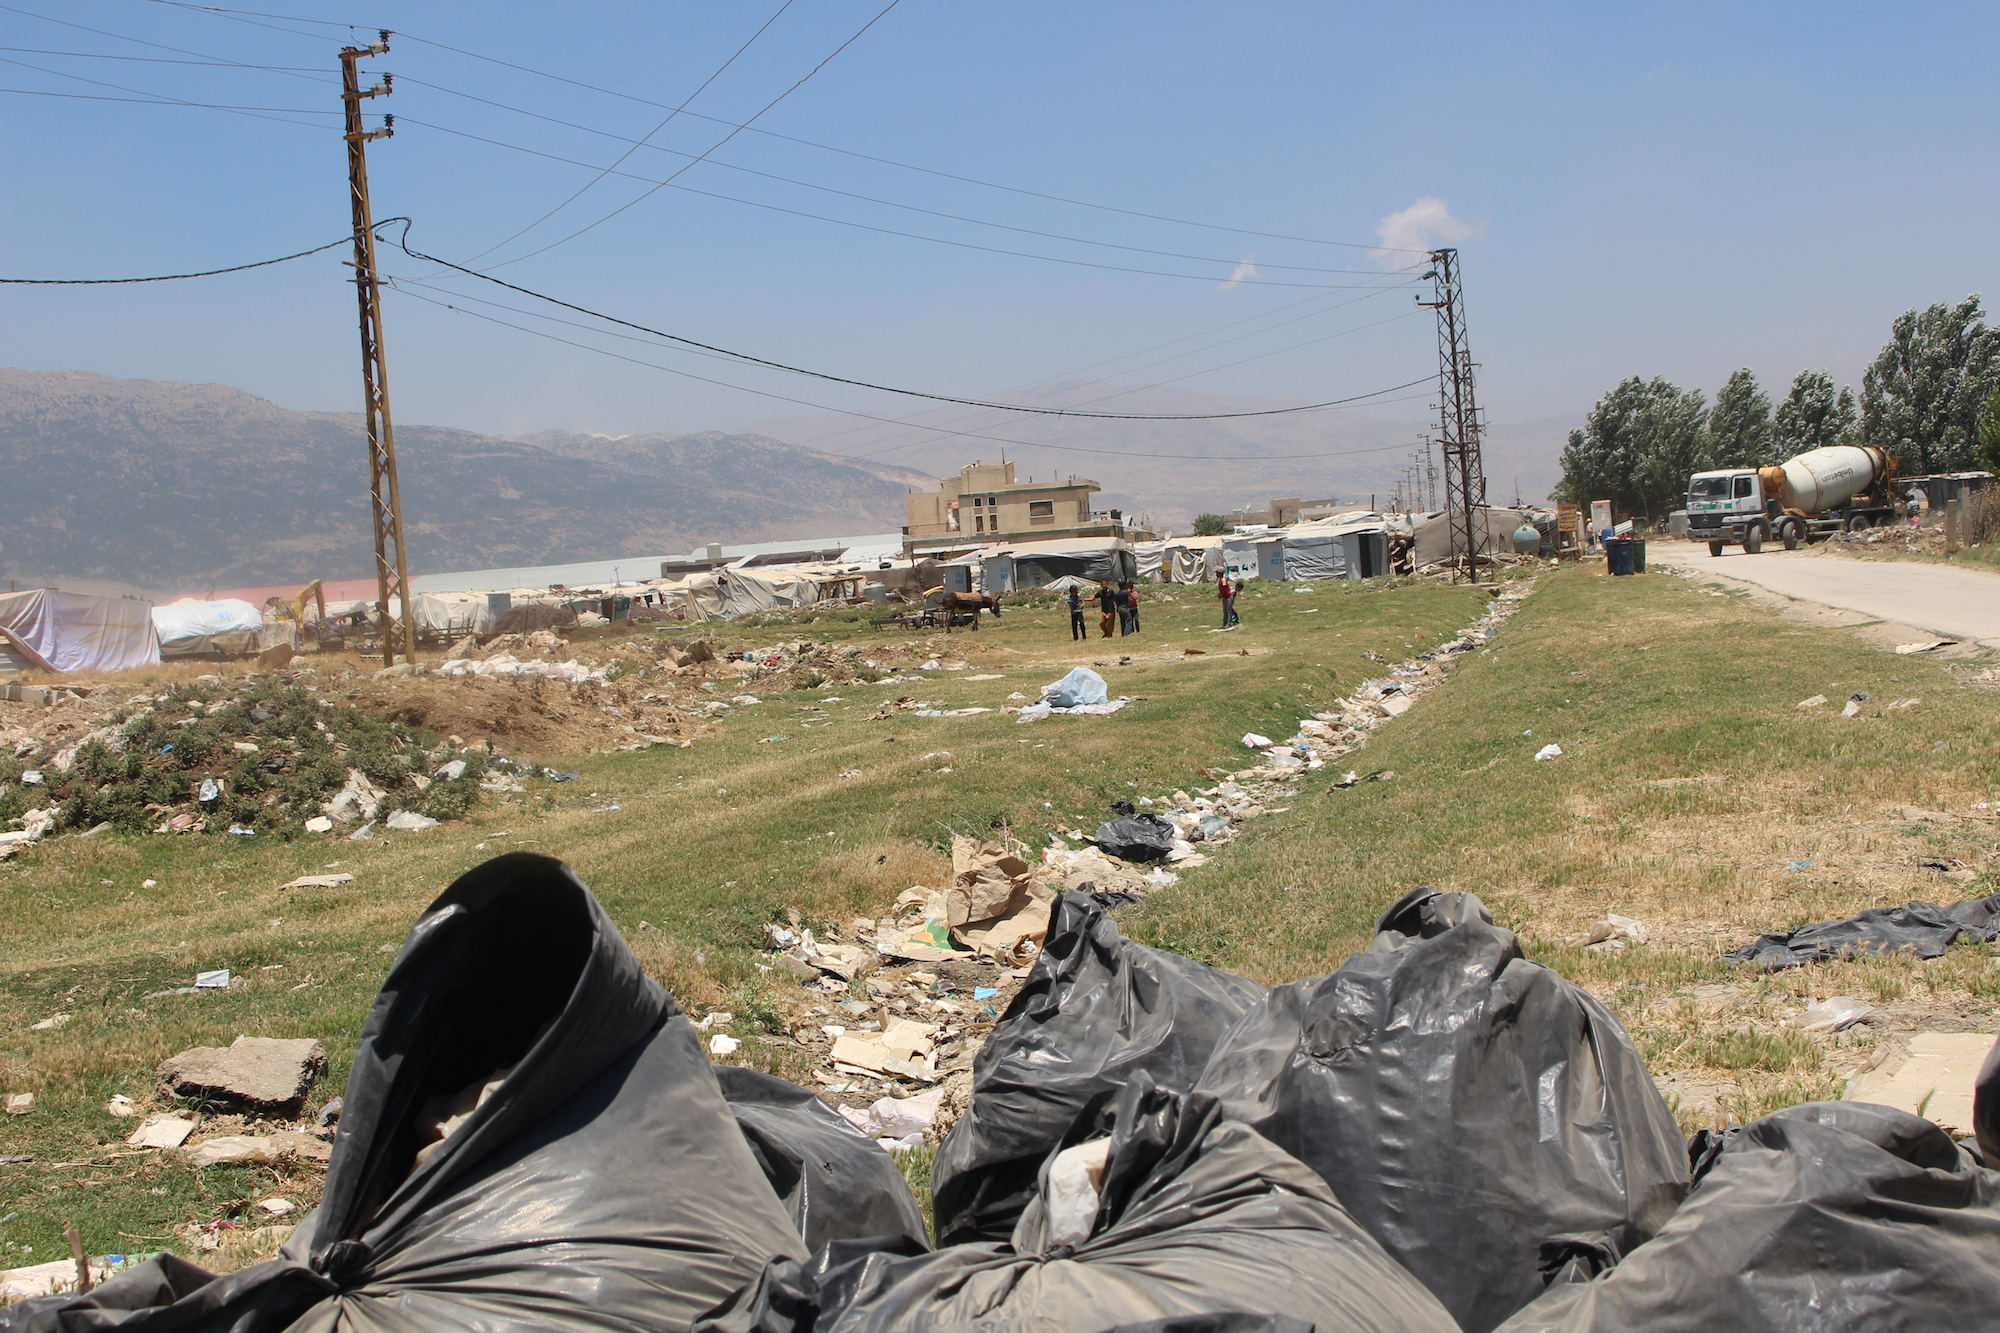 Syrian refugees in the Bekaa Valley, Lebanon. They have dumped their rubbish in local areas, leading to issues around clean water.